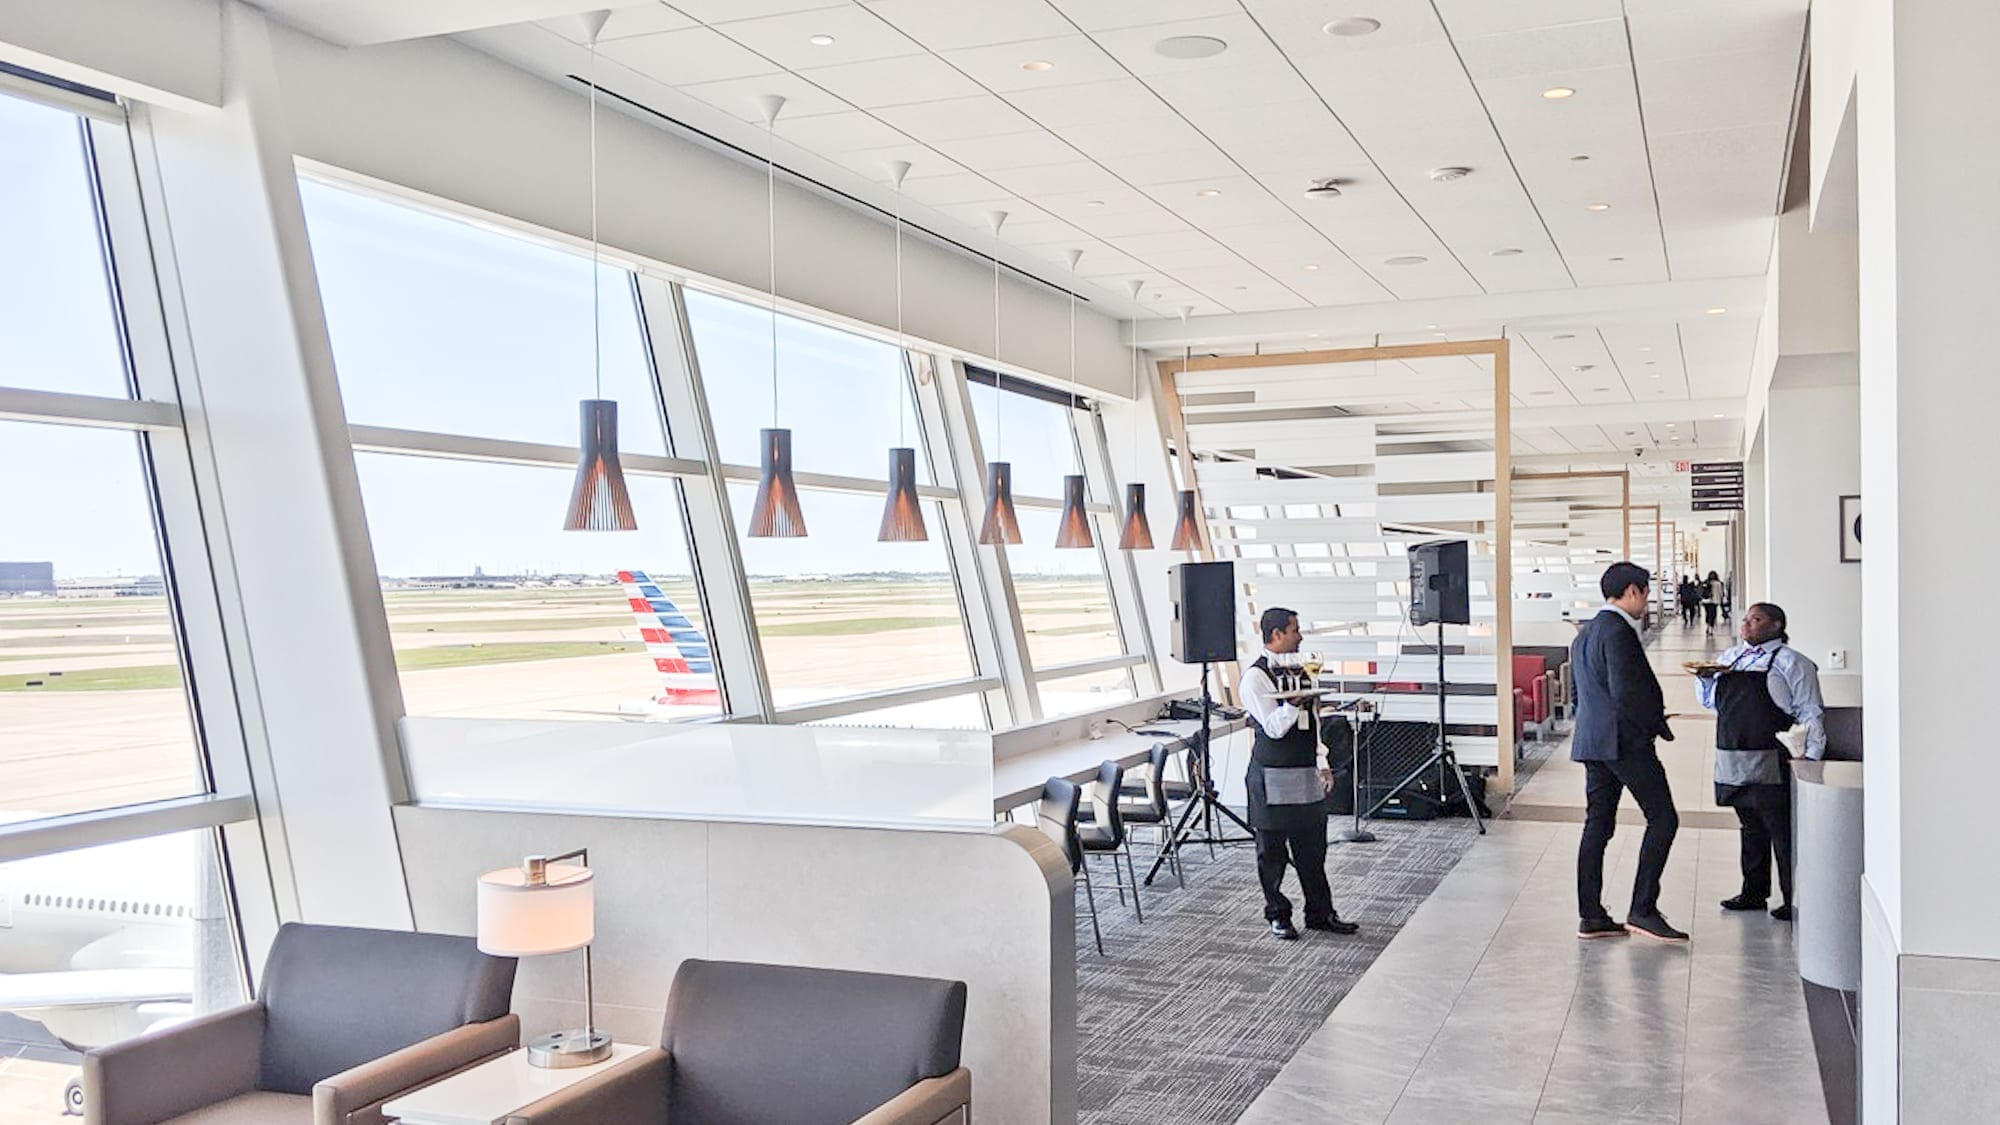 MEP Engineering and Design of Airports and VIP Airport Lounges provided by RWB Consulting Engineers